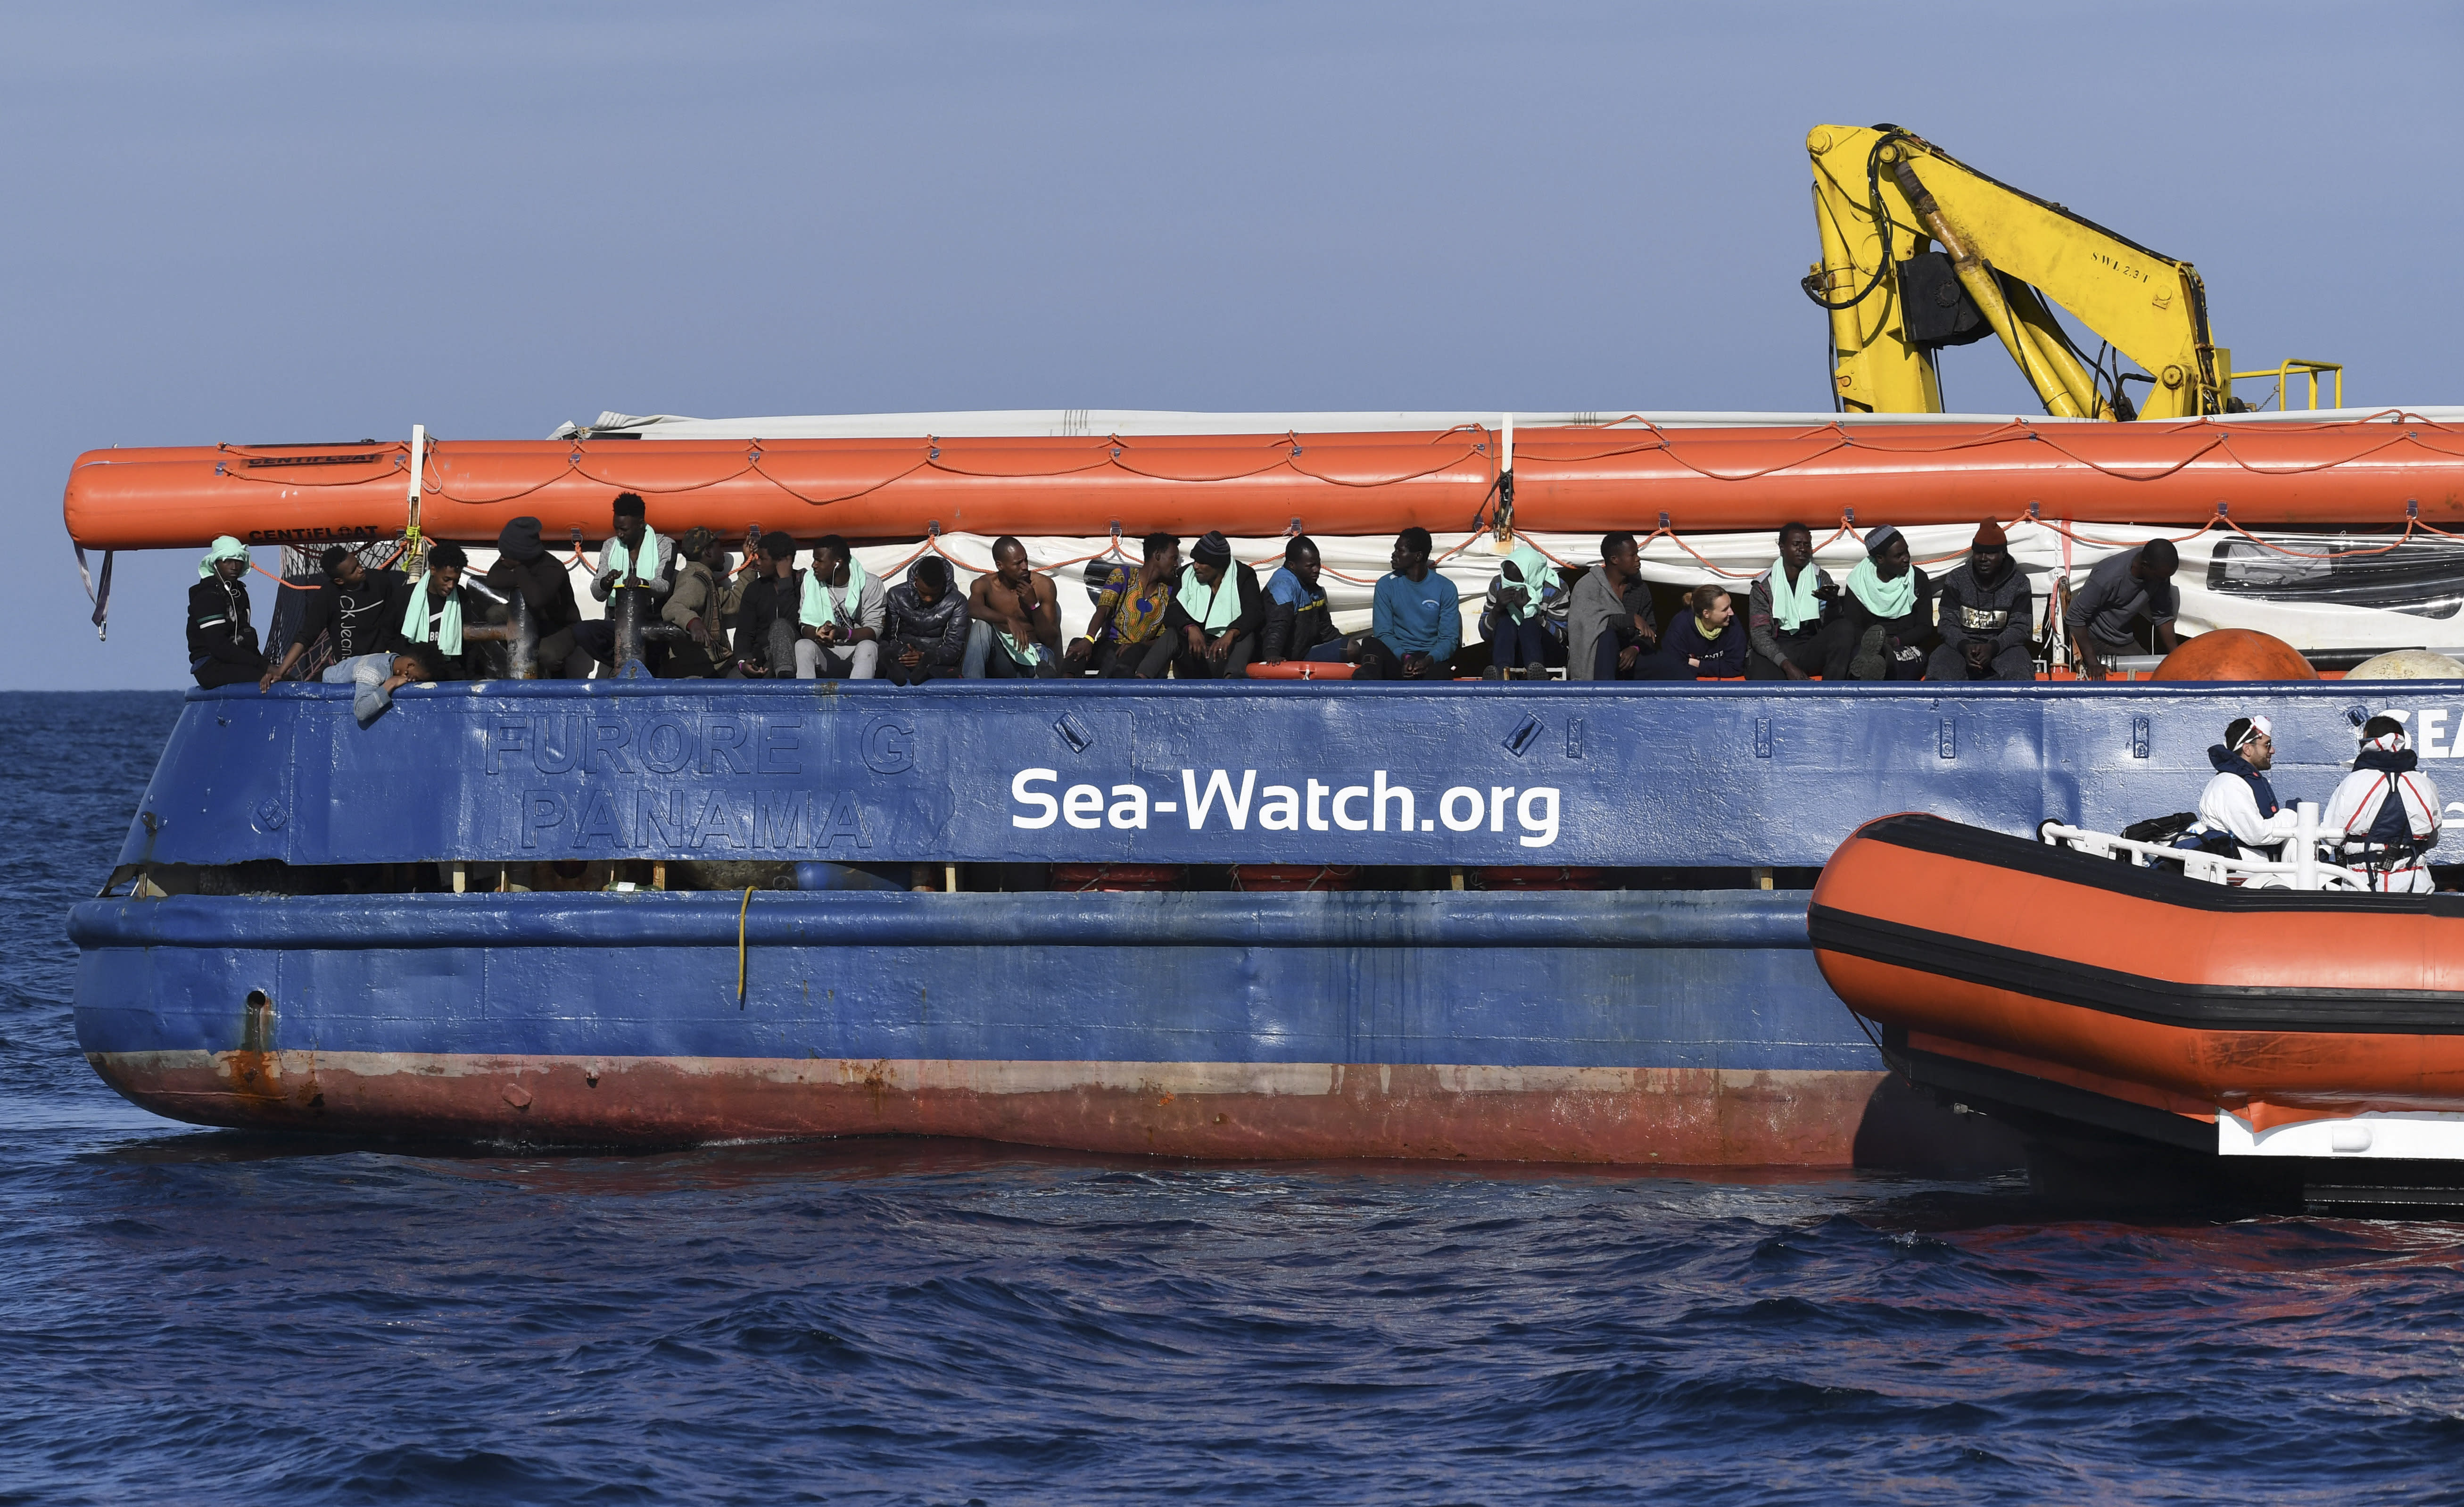 A coastguard boat approaches the German humanitarian group's rescue boat Sea Watch 3, to deliver food and blankets for the cold, off the coast of Syracuse, Italy, Sunday, Jan. 27, 2019. The Italian coast guard is bringing socks, shoes, bread and fruit to 47 migrants who have been stranded at sea for nine days aboard a German ship. (AP Photo/Salvatore Cavalli)